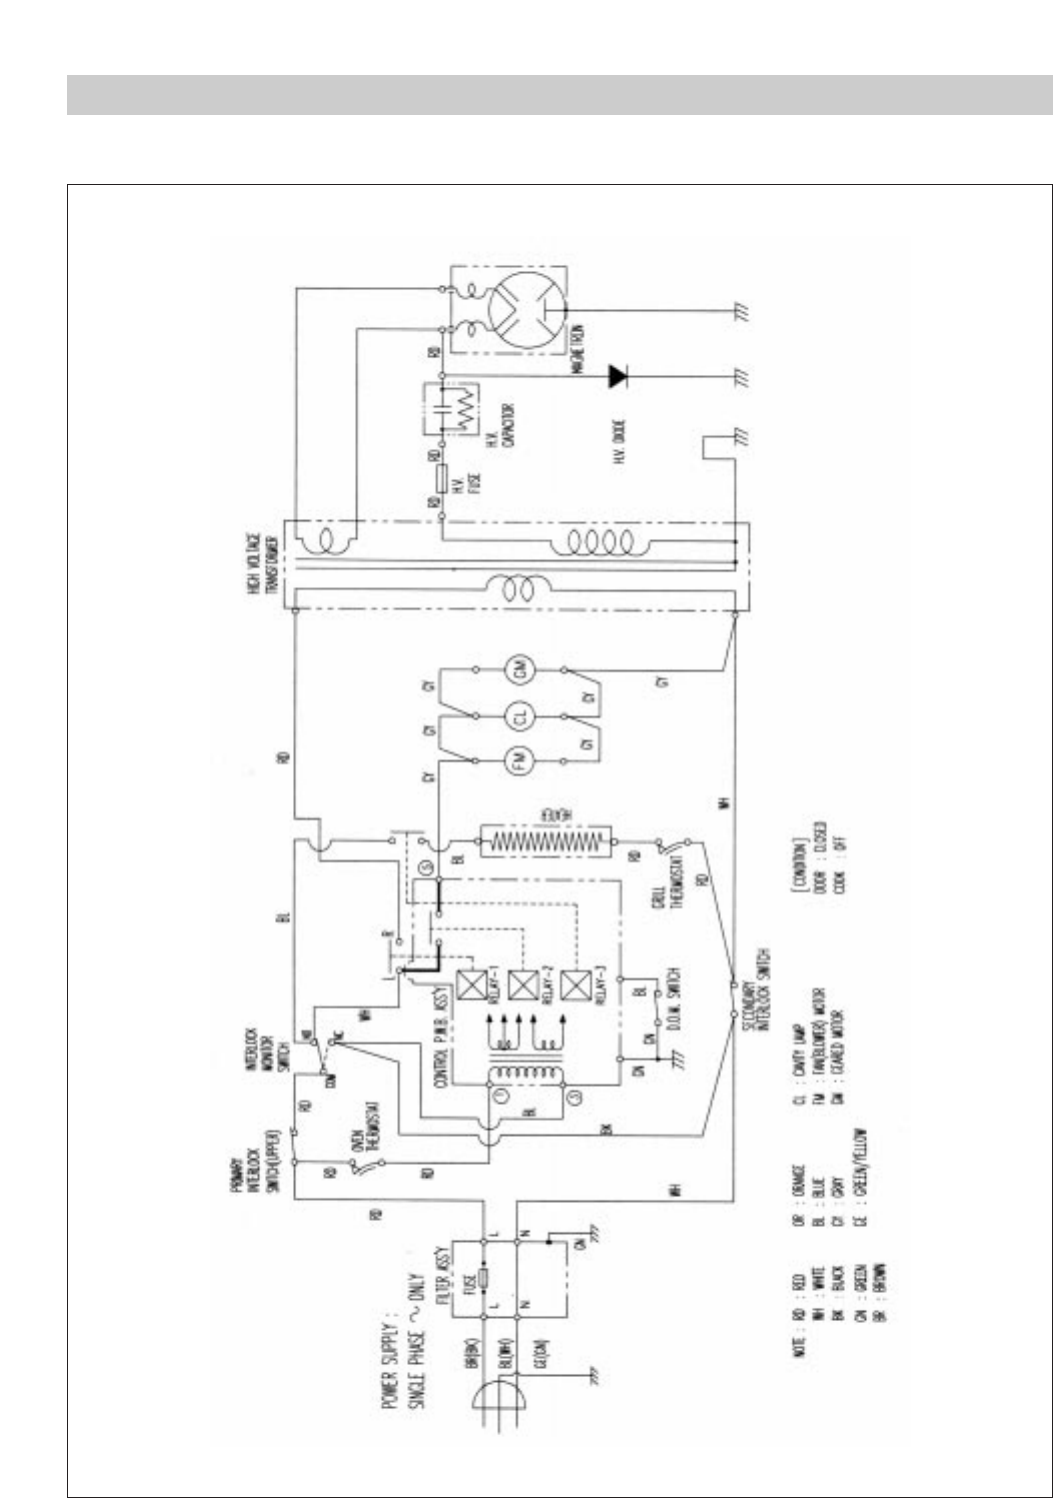 Page 53 of Daewoo Microwave Oven KOG-391G0S User Guide